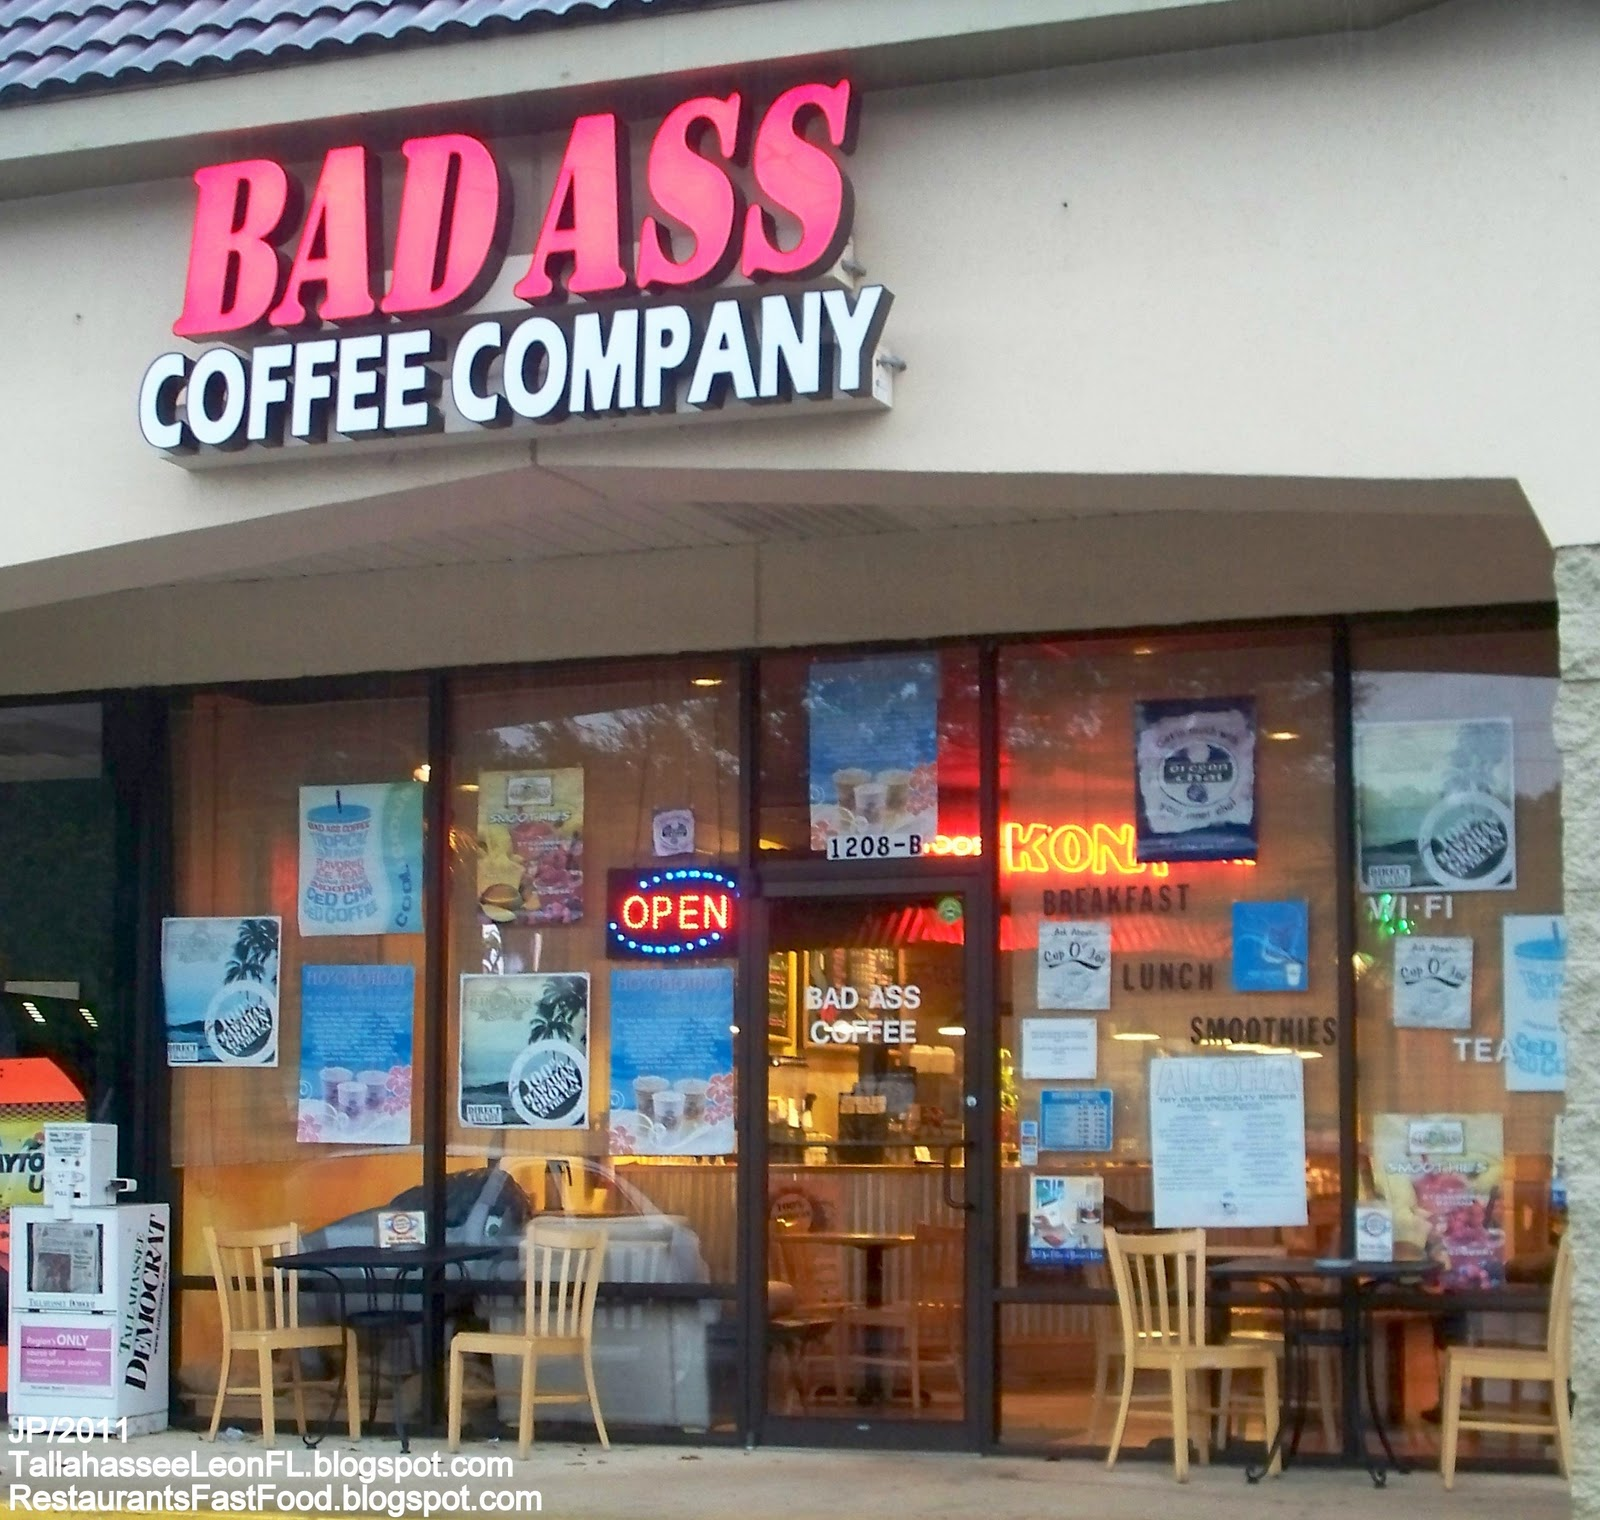 Was Bad ass coffee shop